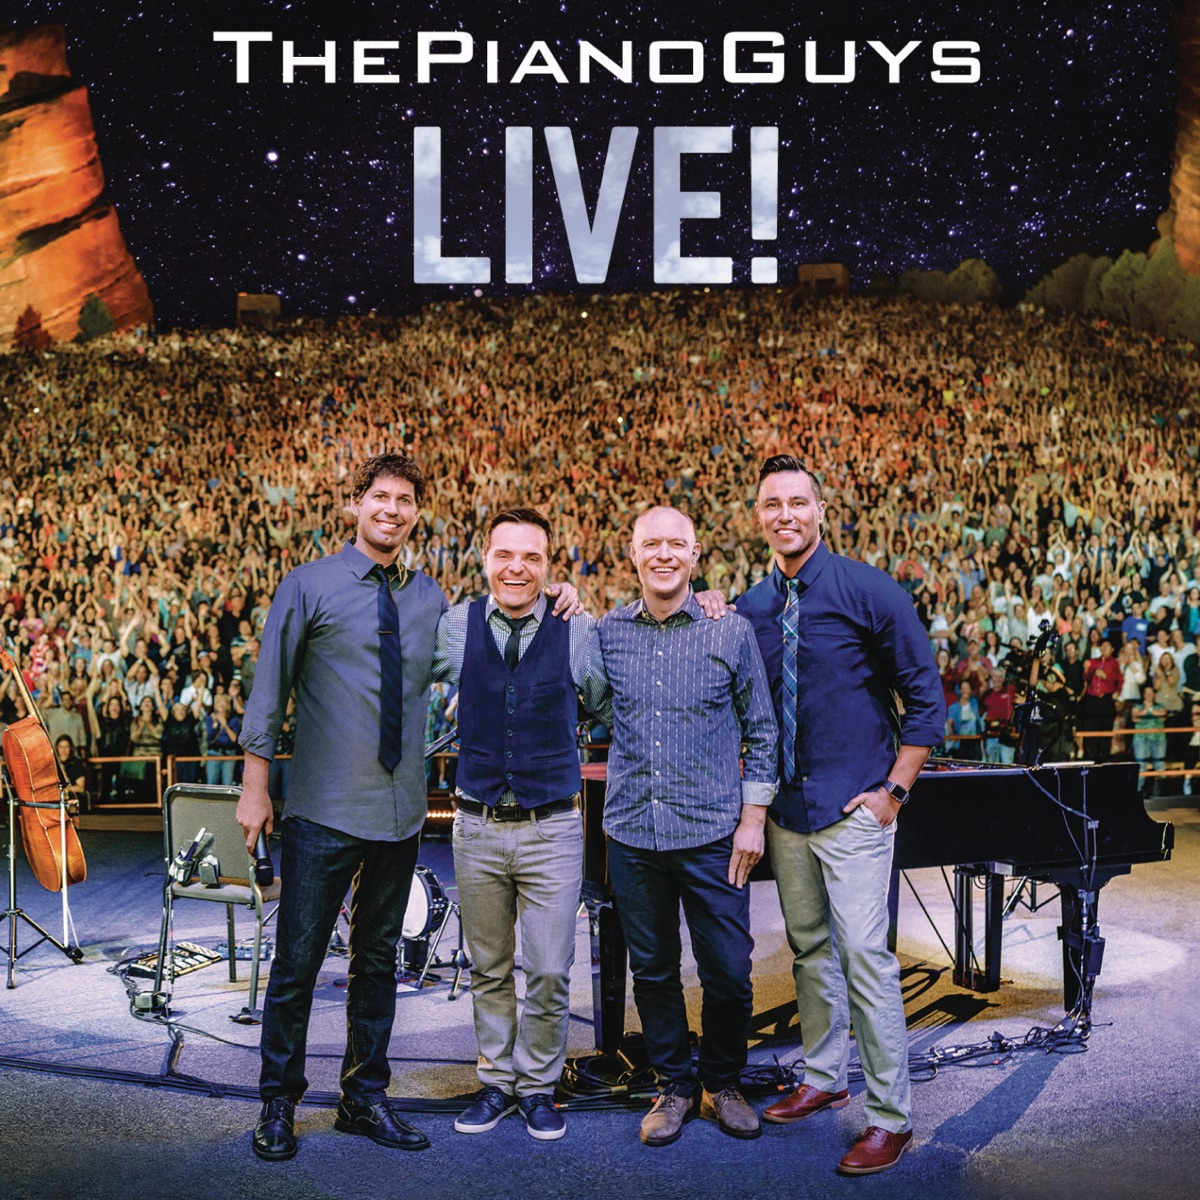 Live The Piano Guys CD cover